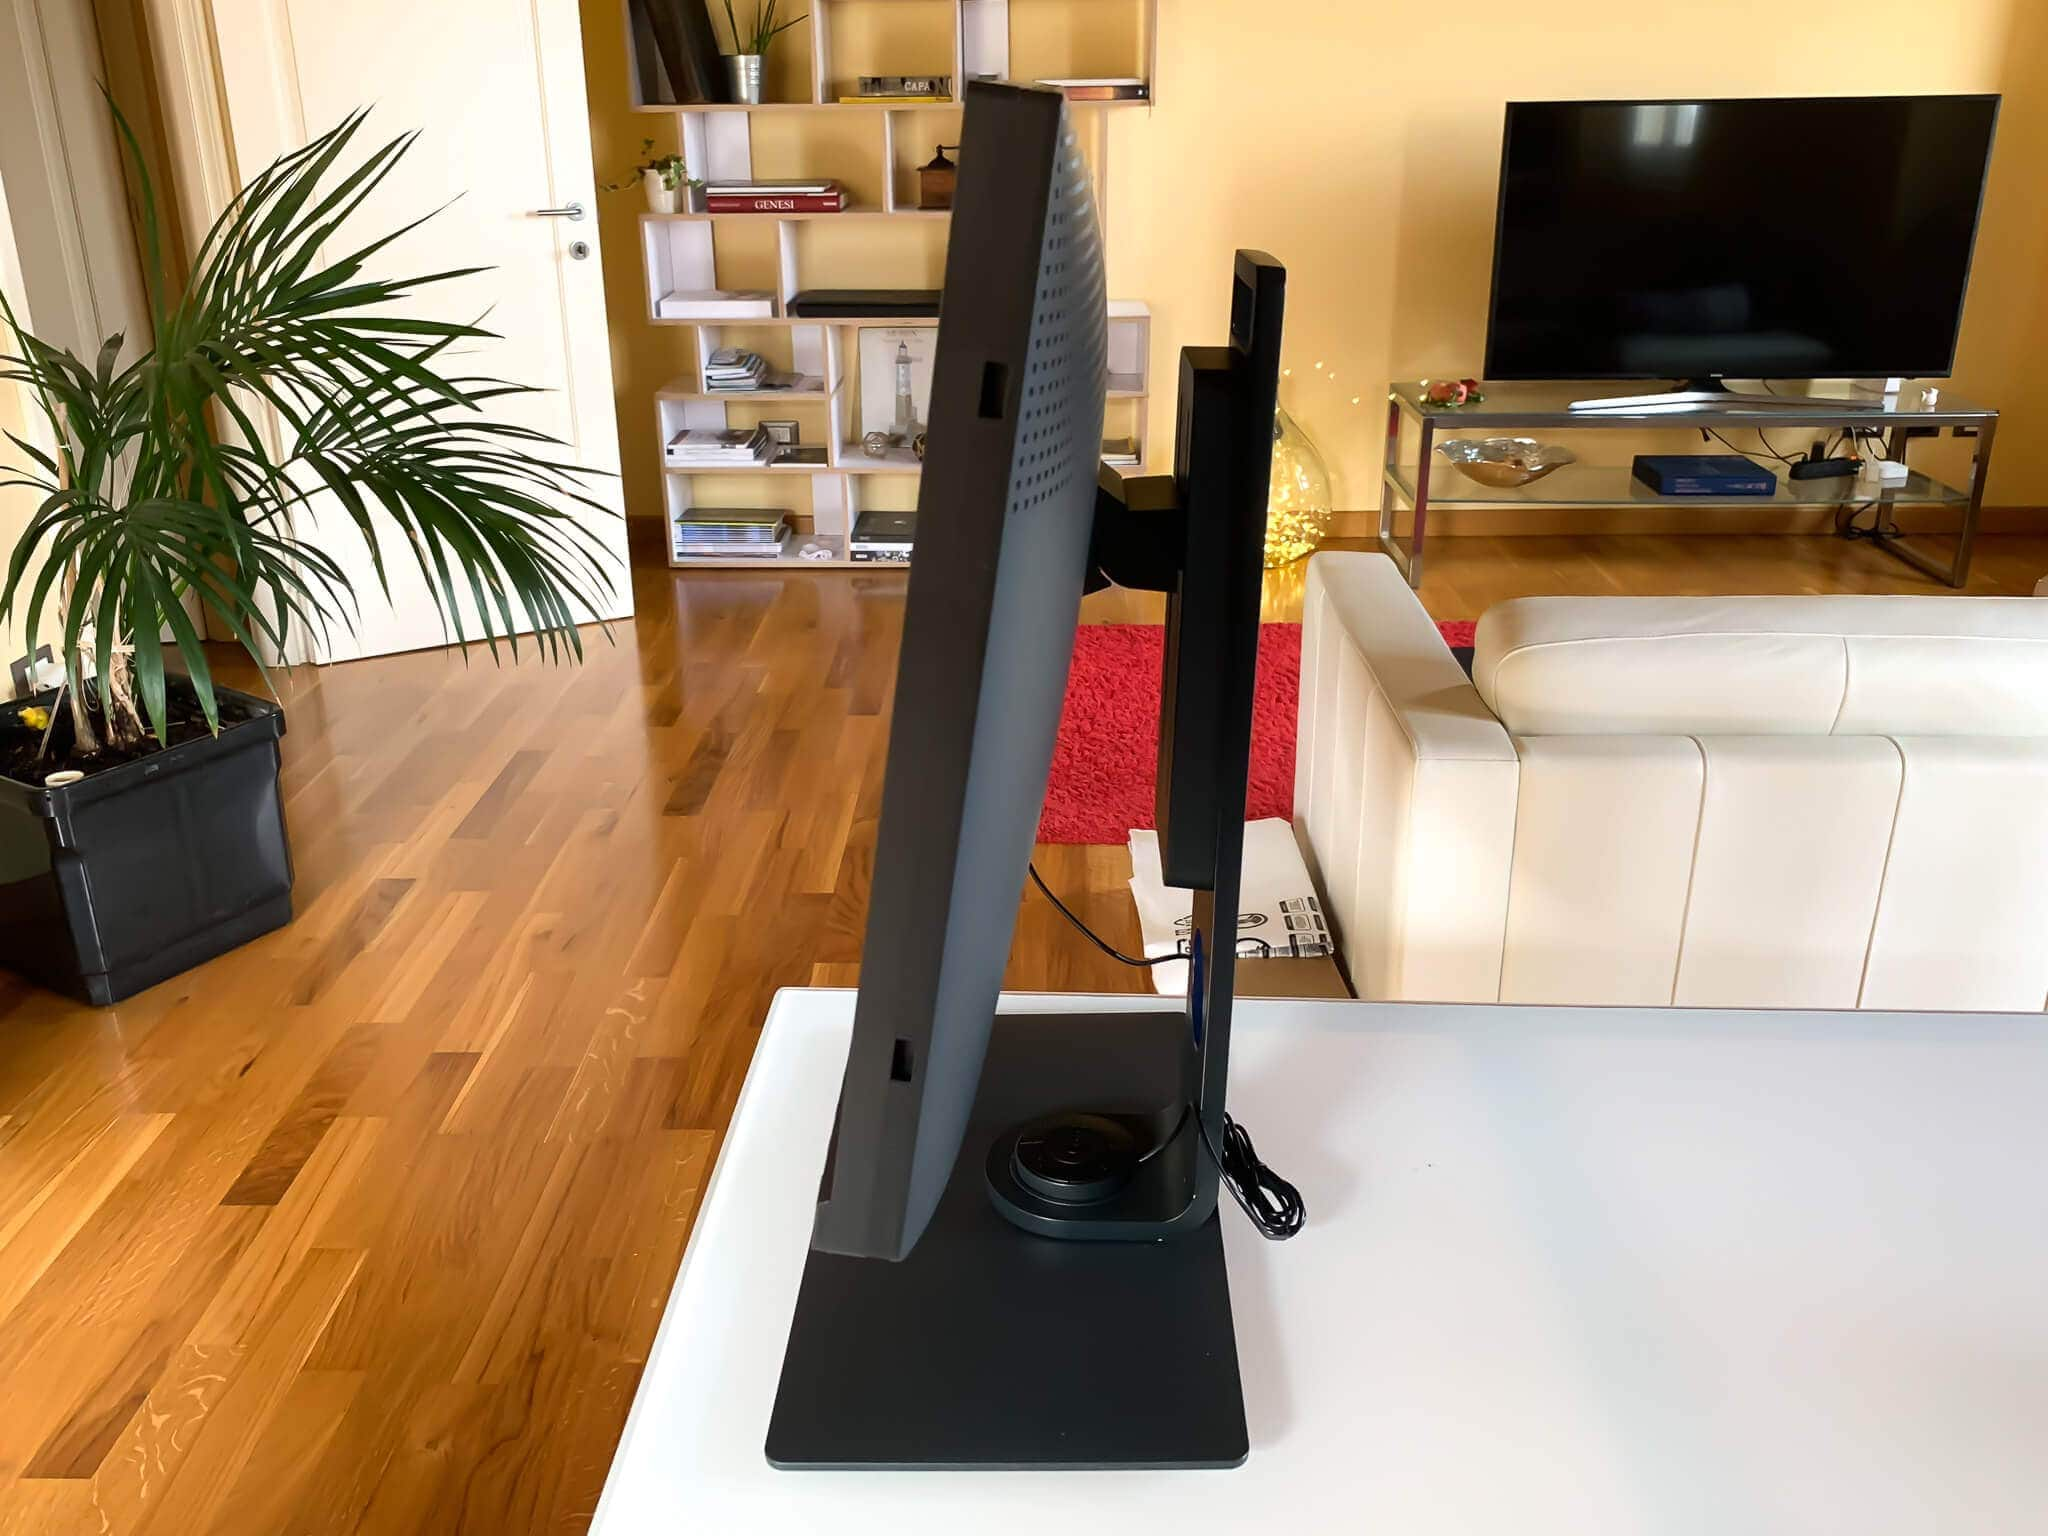 5 Francesco Gola BenQ SW271 Monitor Display 4K Unboxing Overview